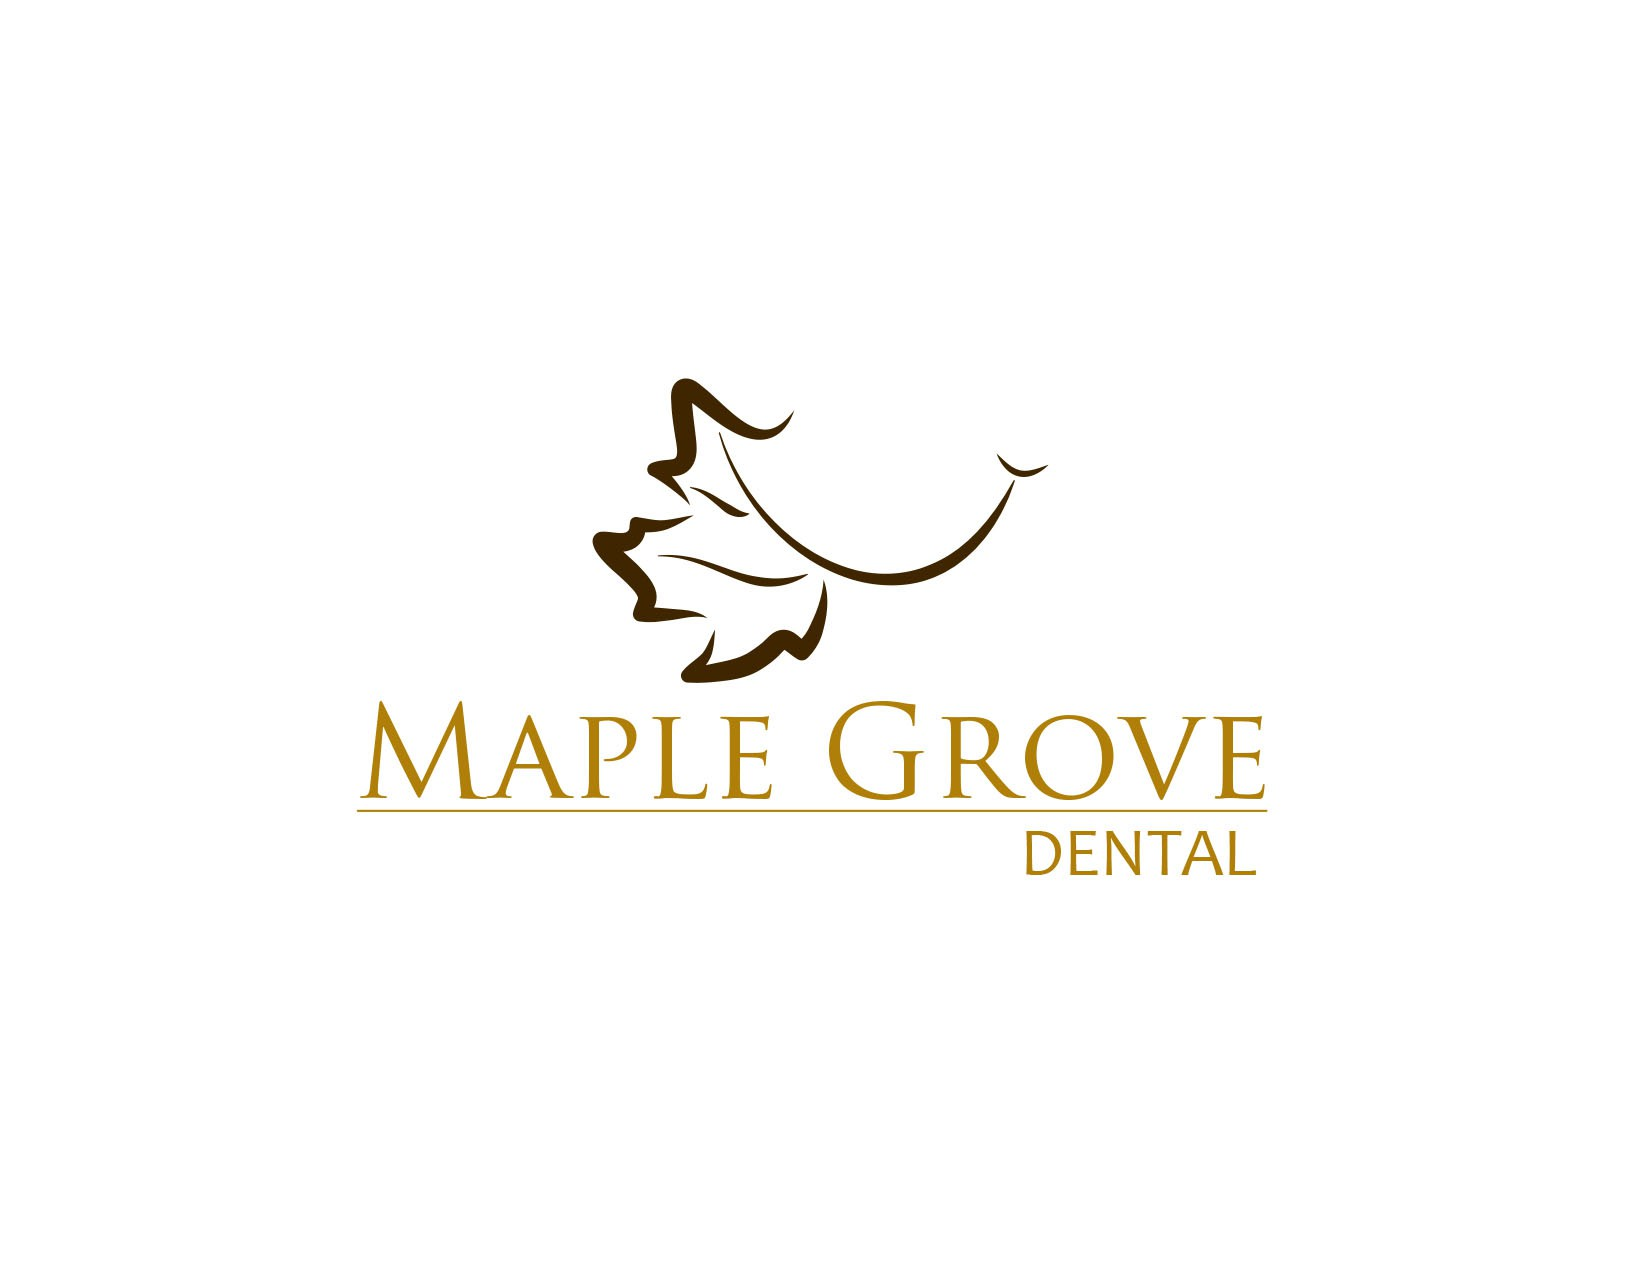 logo for Maple Grove Dental.  It can be a seperate logo or incorperated in part of the name.